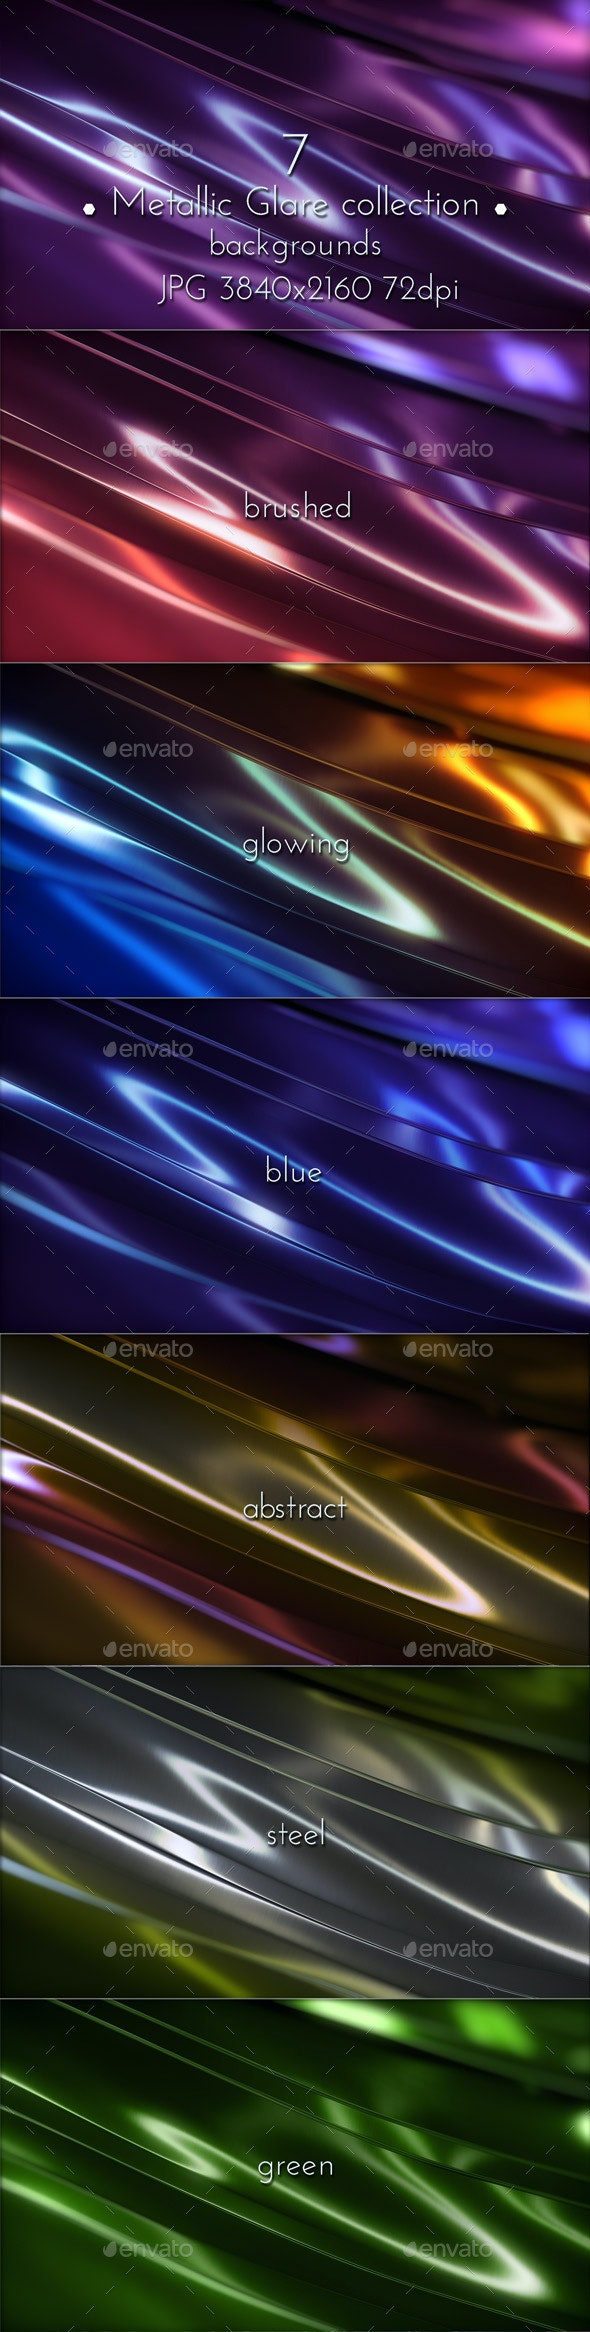 Metallic Glare Background - Abstract Backgrounds